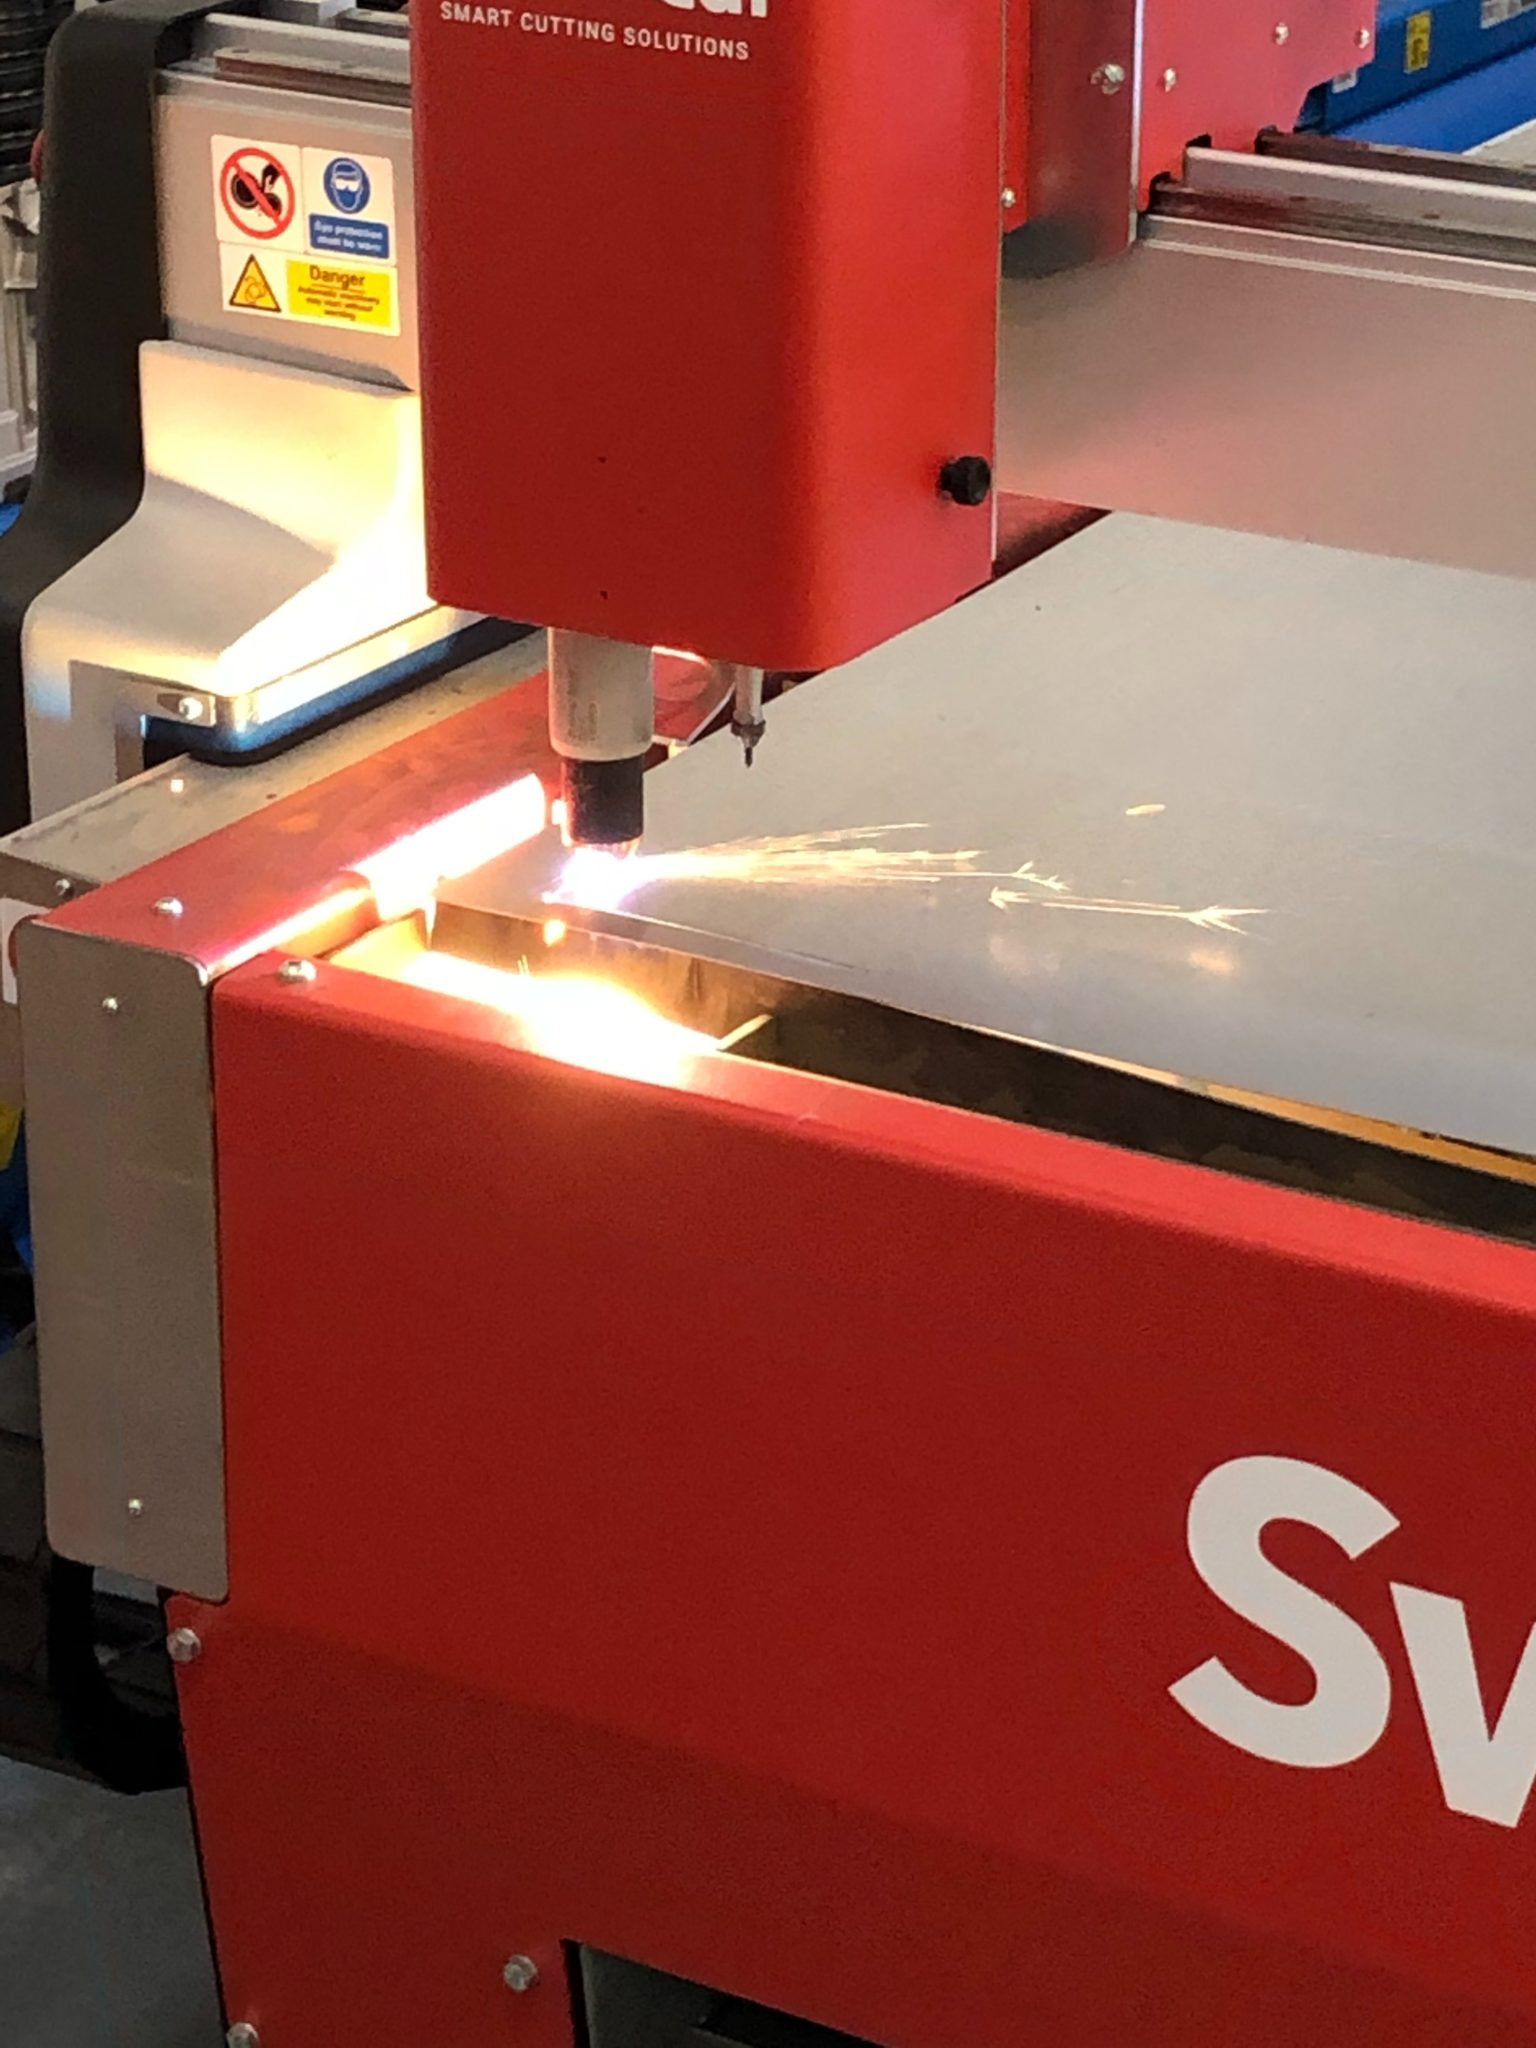 Eagle Fabrications Swift Cutter Swift-Cut Pro Table cutting metal sheet